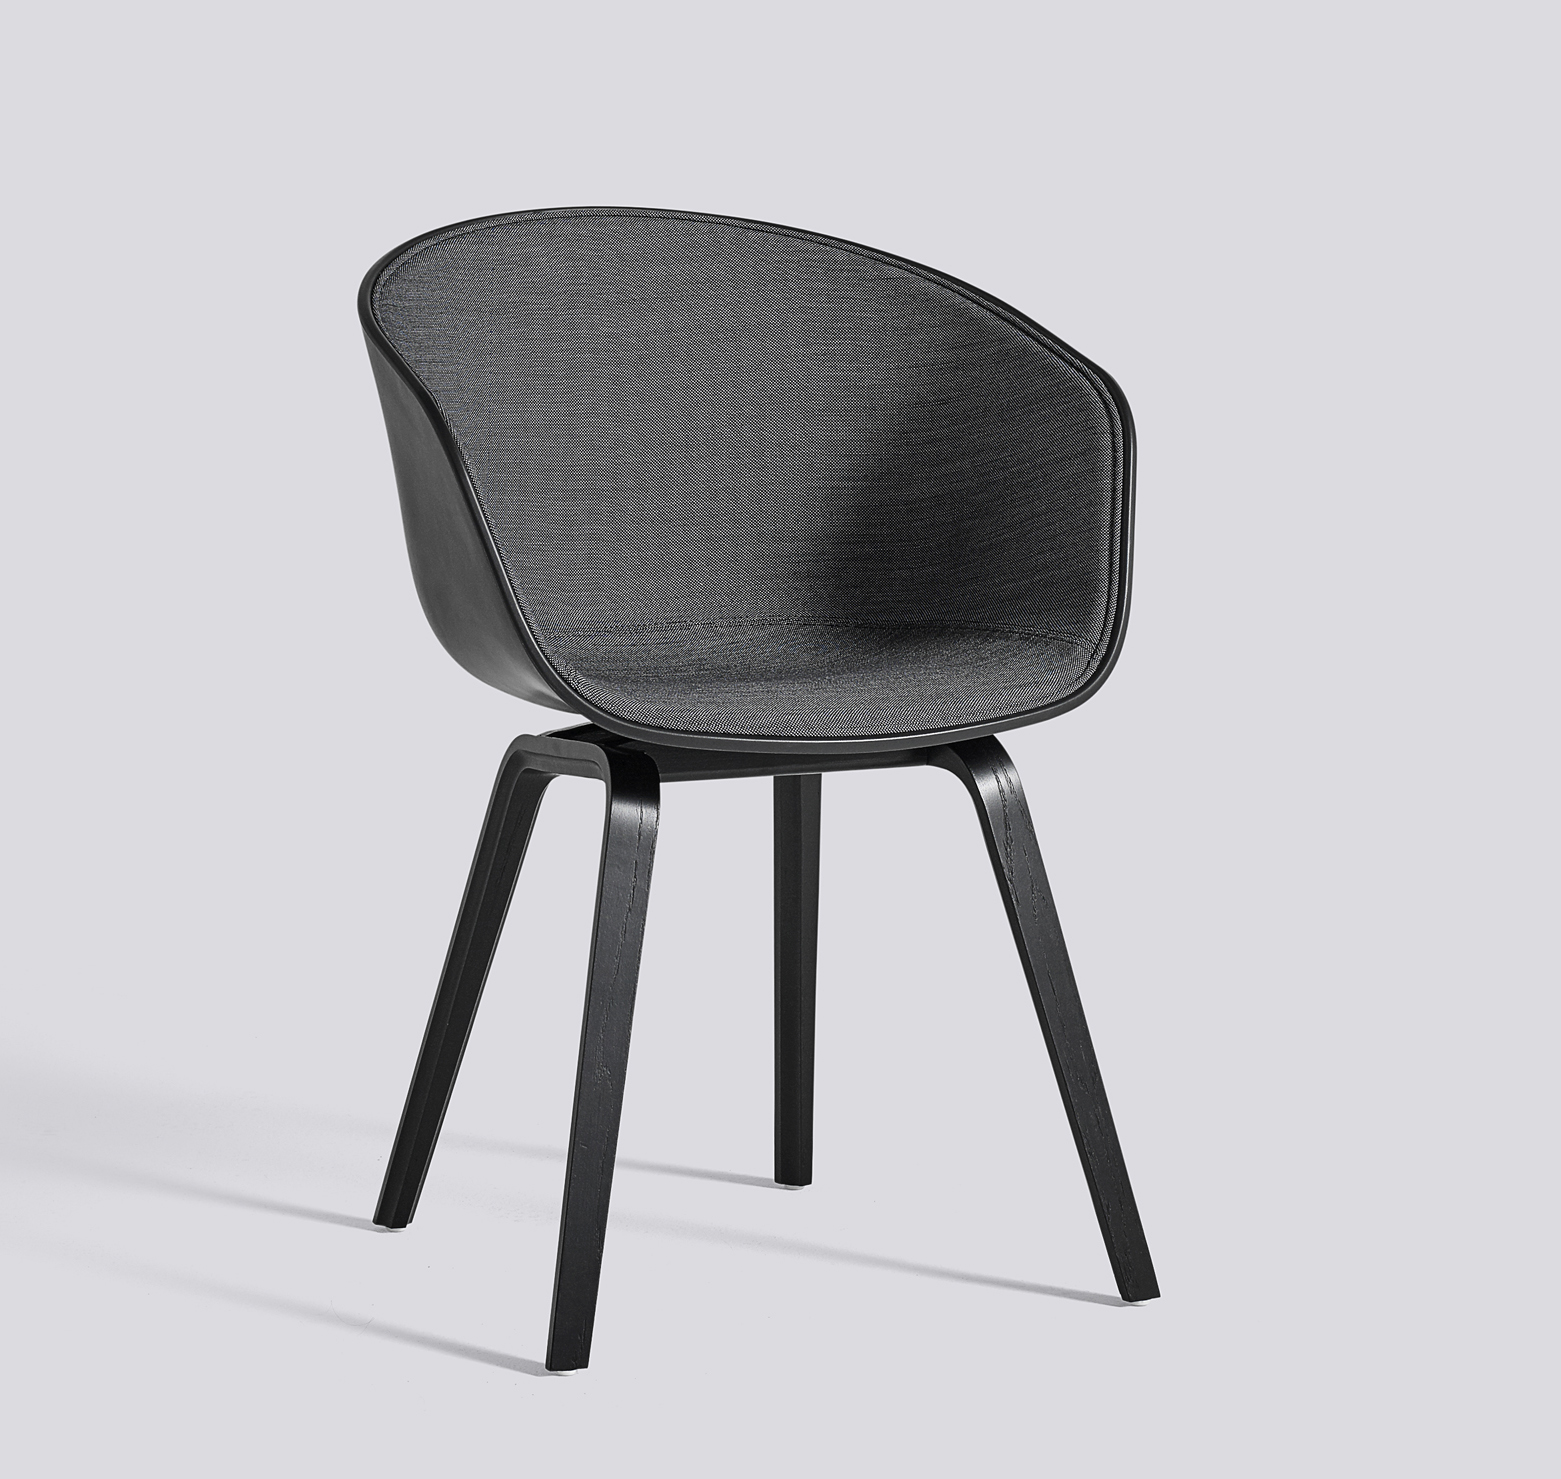 hay about a chair aac22 frontpolstret spisestol. Black Bedroom Furniture Sets. Home Design Ideas